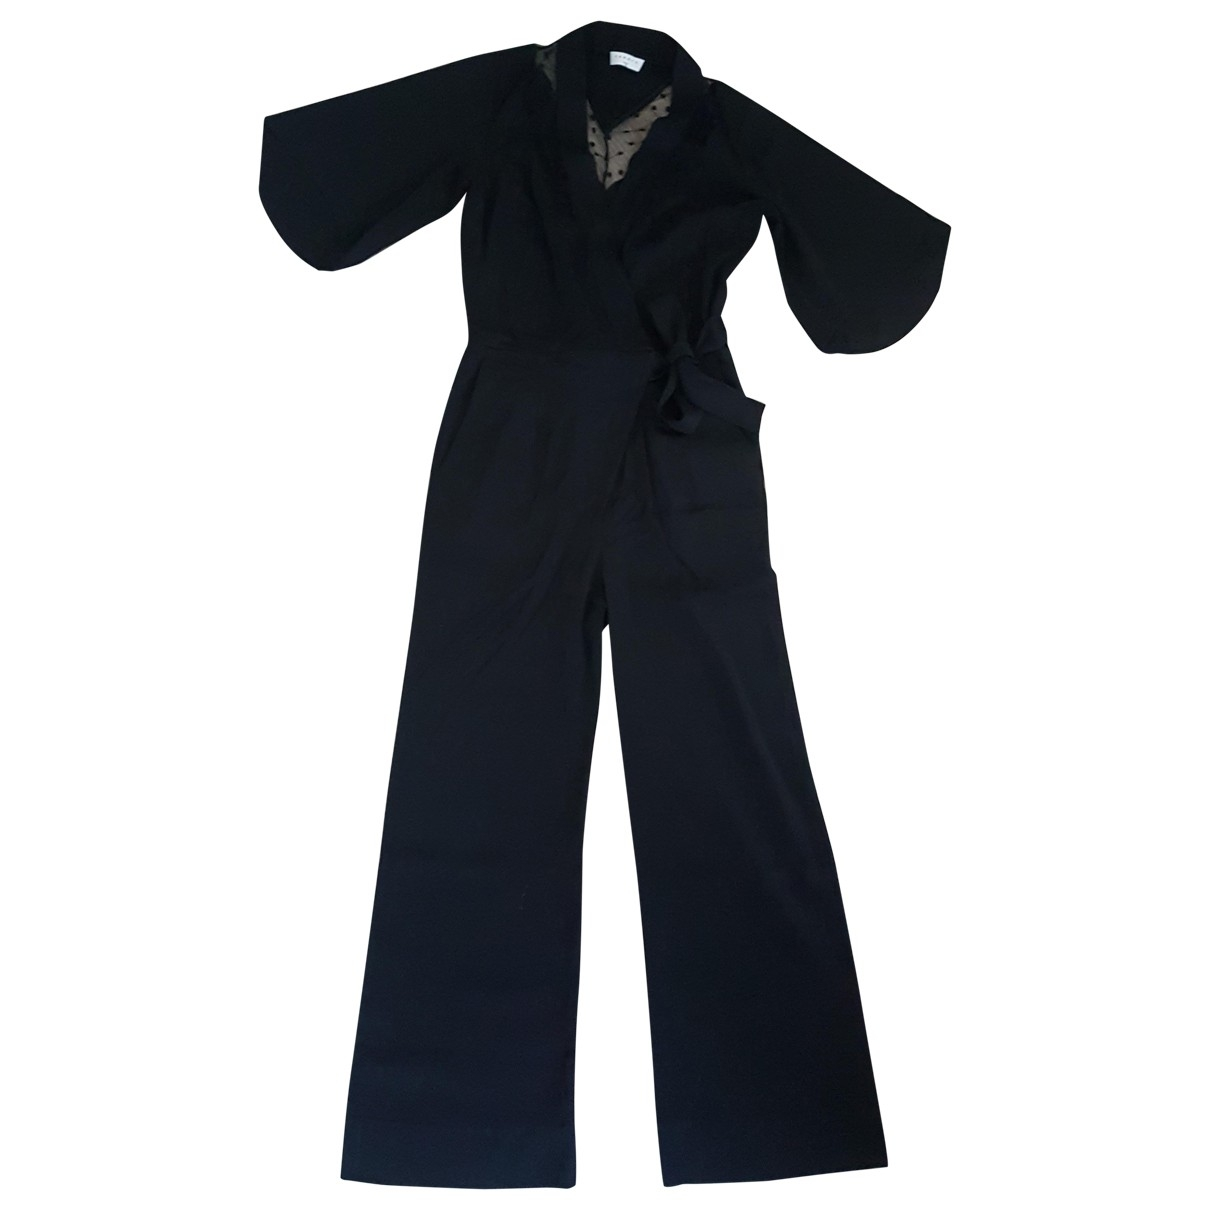 Sandro \N Black jumpsuit for Women 36 FR